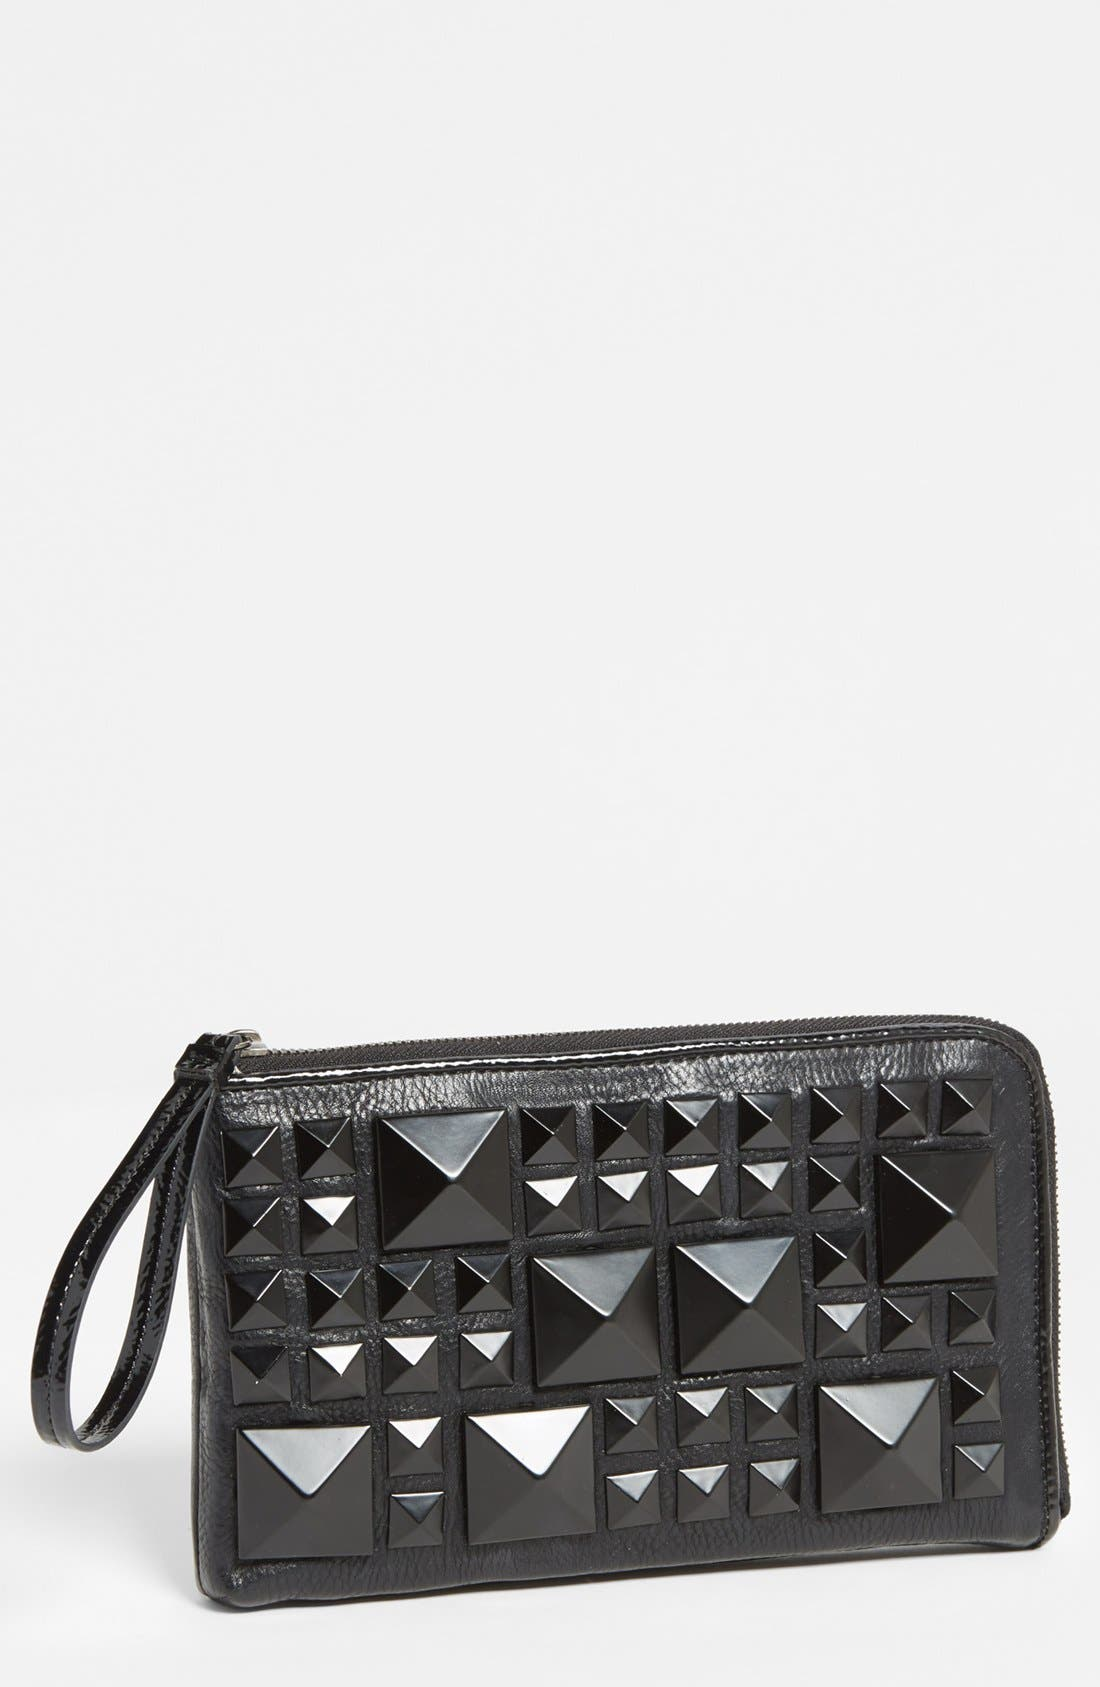 Main Image - POVERTY FLATS by rian Matte Pyramid Stud Zip Clutch